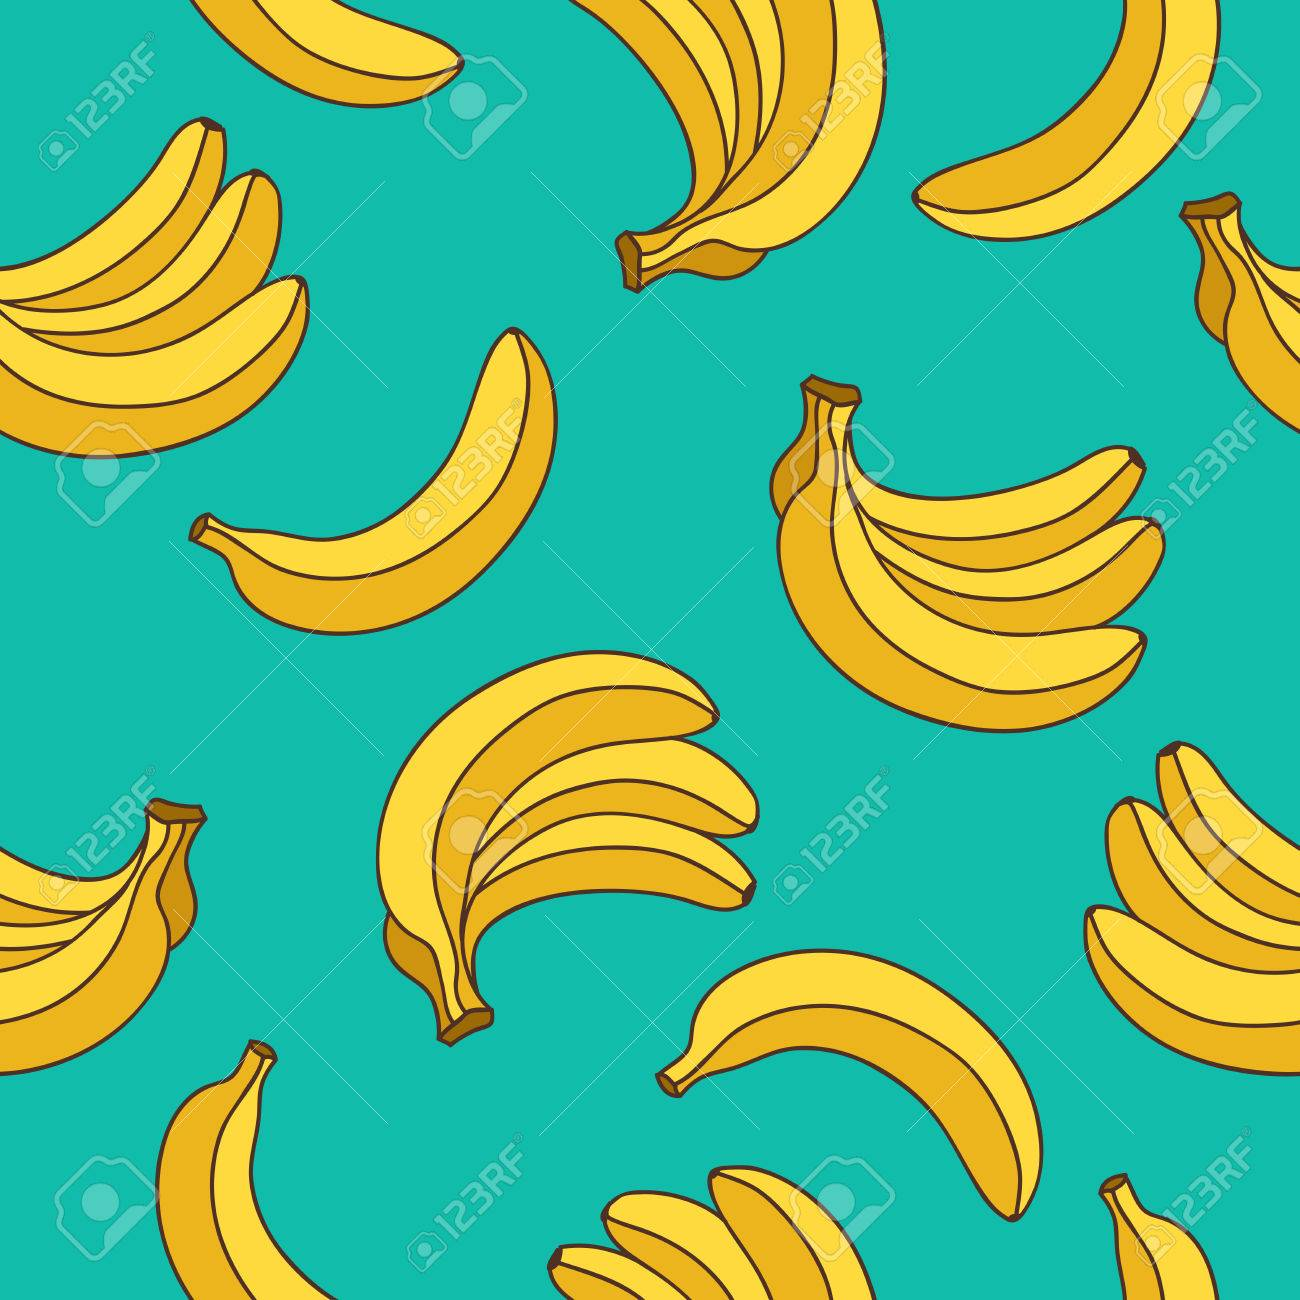 Seamless vector pattern of yellow bananas on a blue background. - 53774069